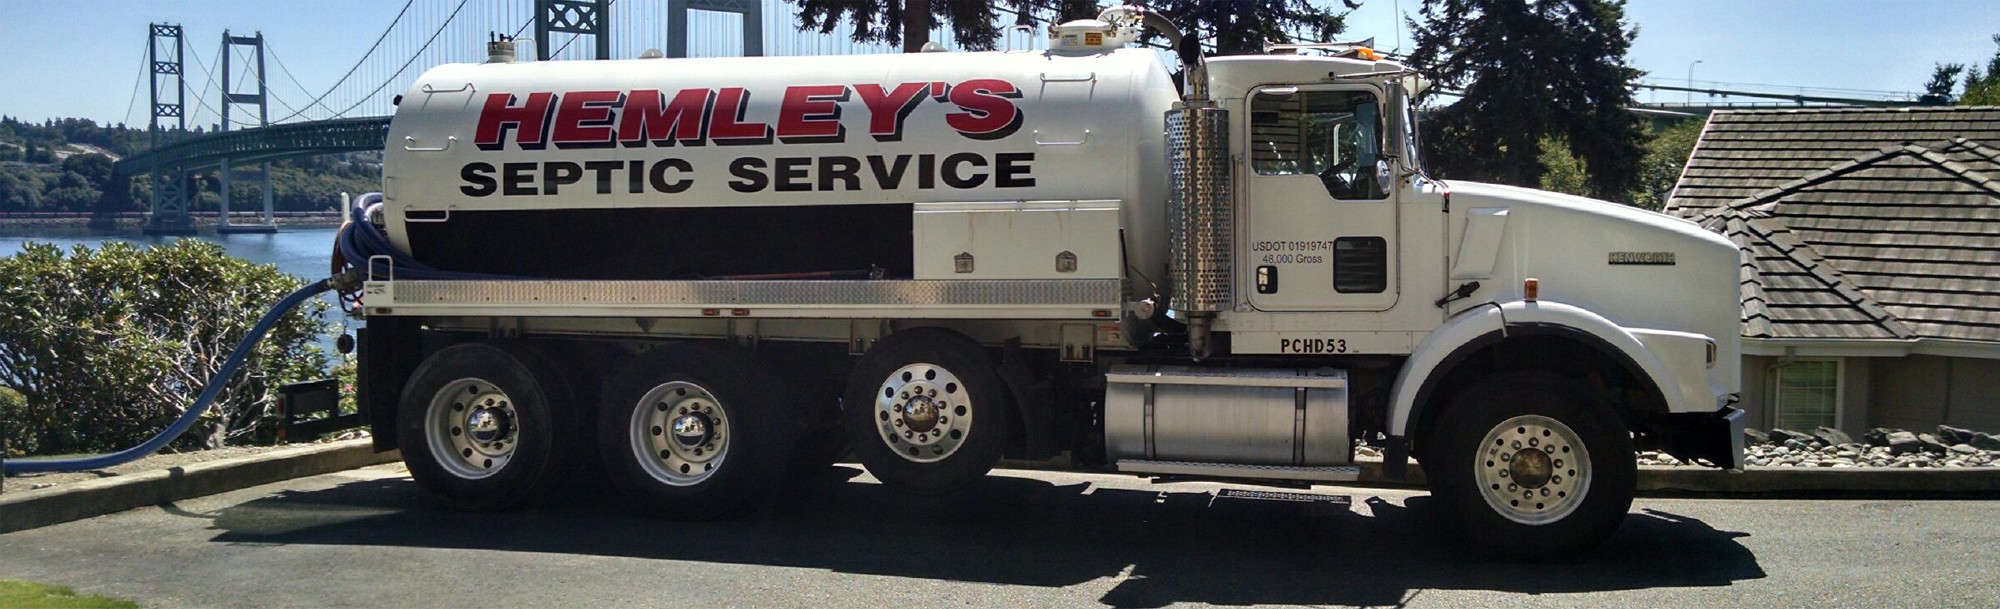 Hemley's Septic: Septic Services Port Orchard, Gig Harbor, WA